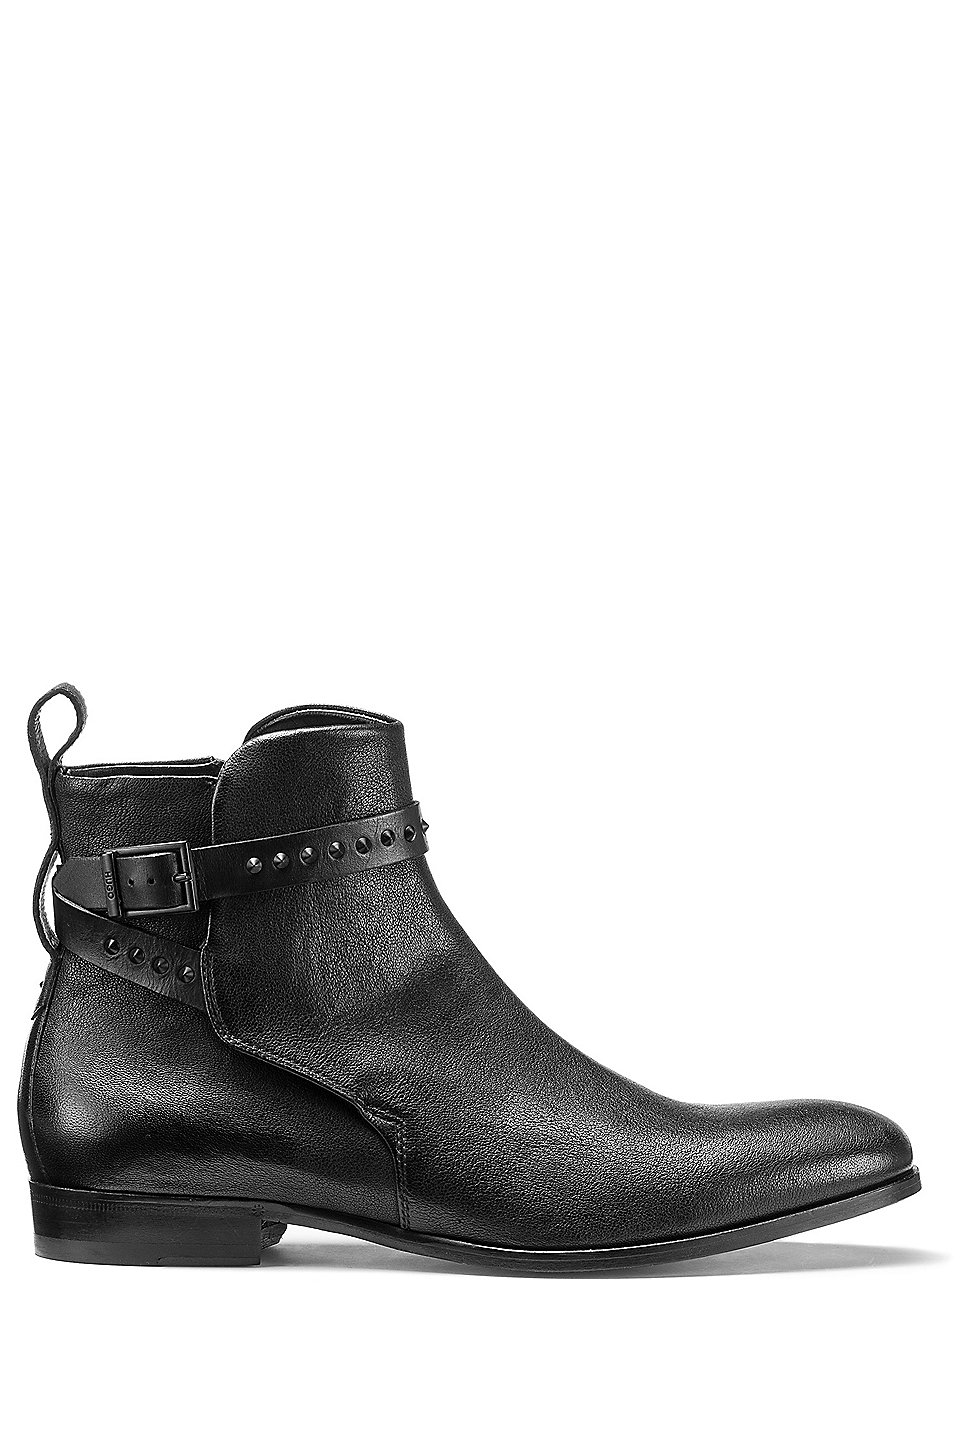 Jodhpur Style Chelsea Boots In Tumbled Leather Black